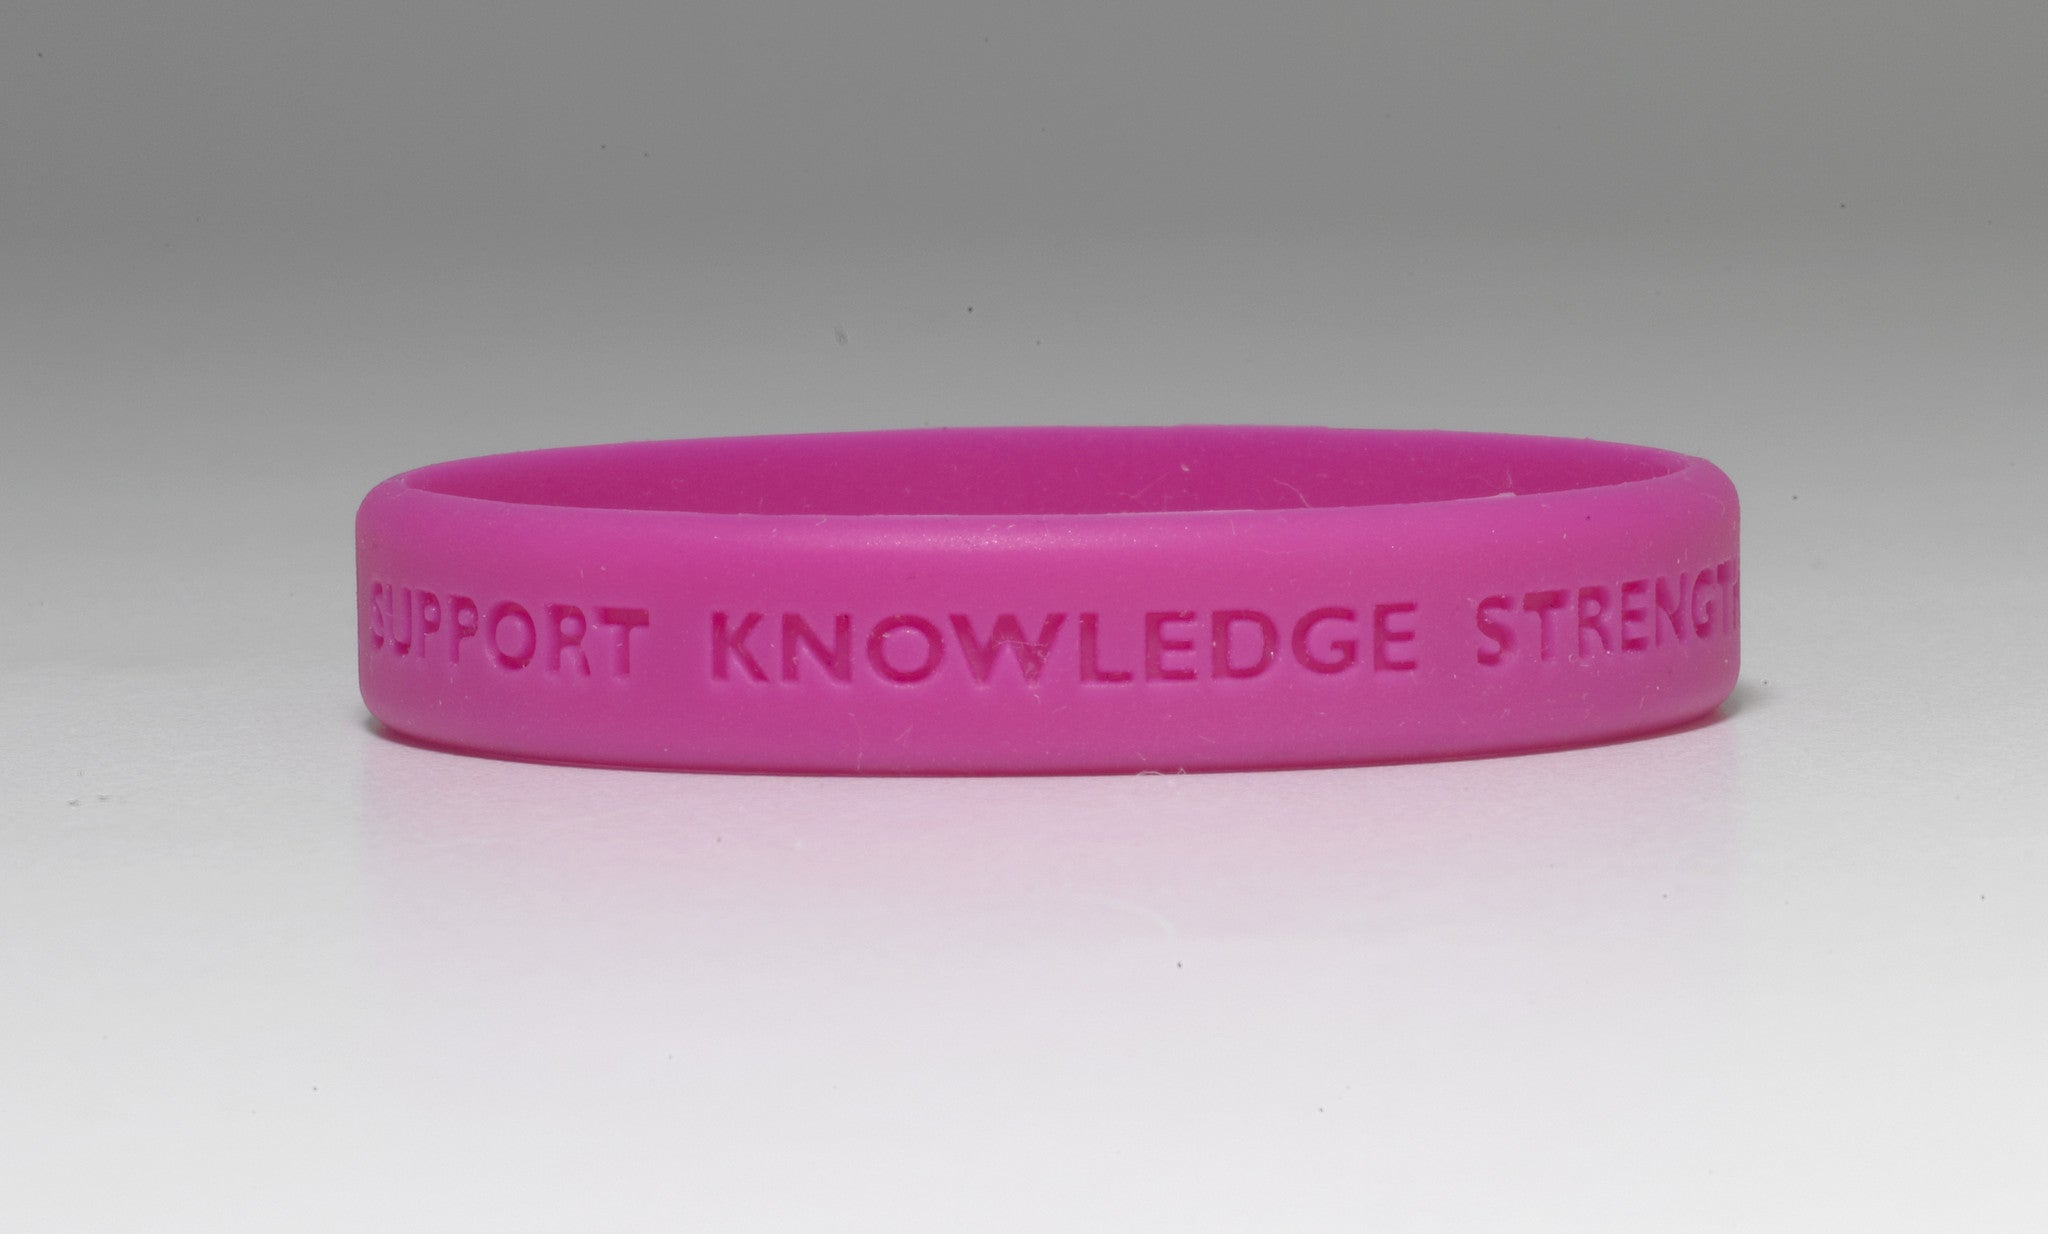 onlineshop cancer collection bracelet day online band unity bangle reef world gold uk research knot shop product silver actofunity rose support